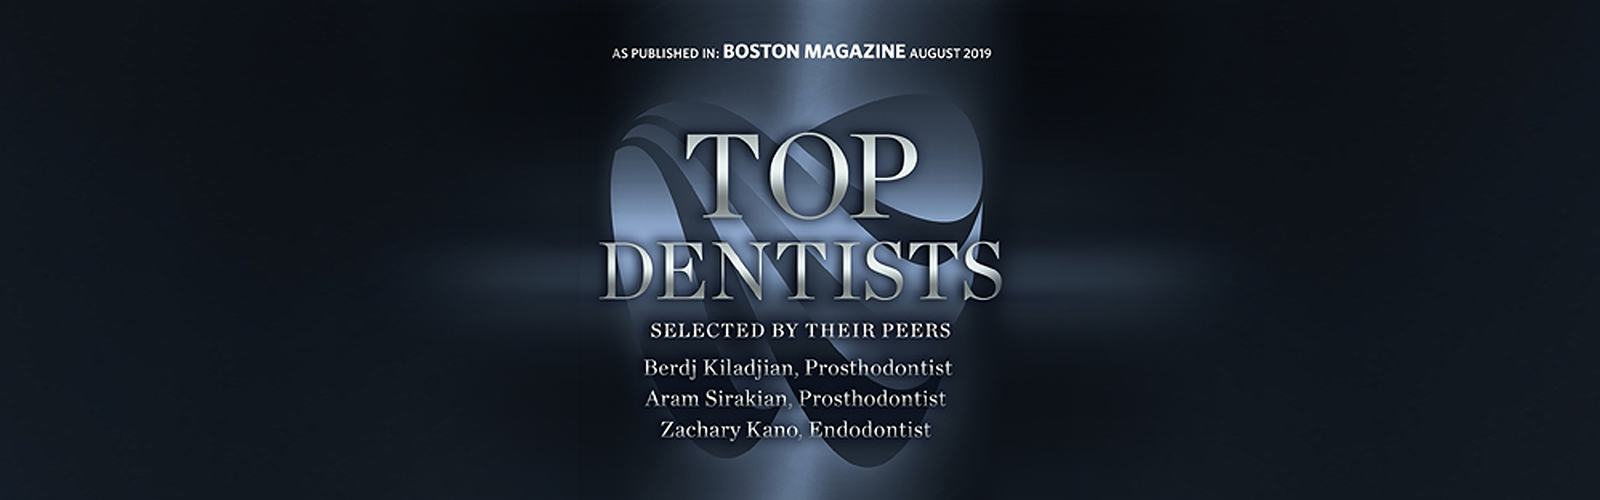 Boston Magazine award for Top Dentists